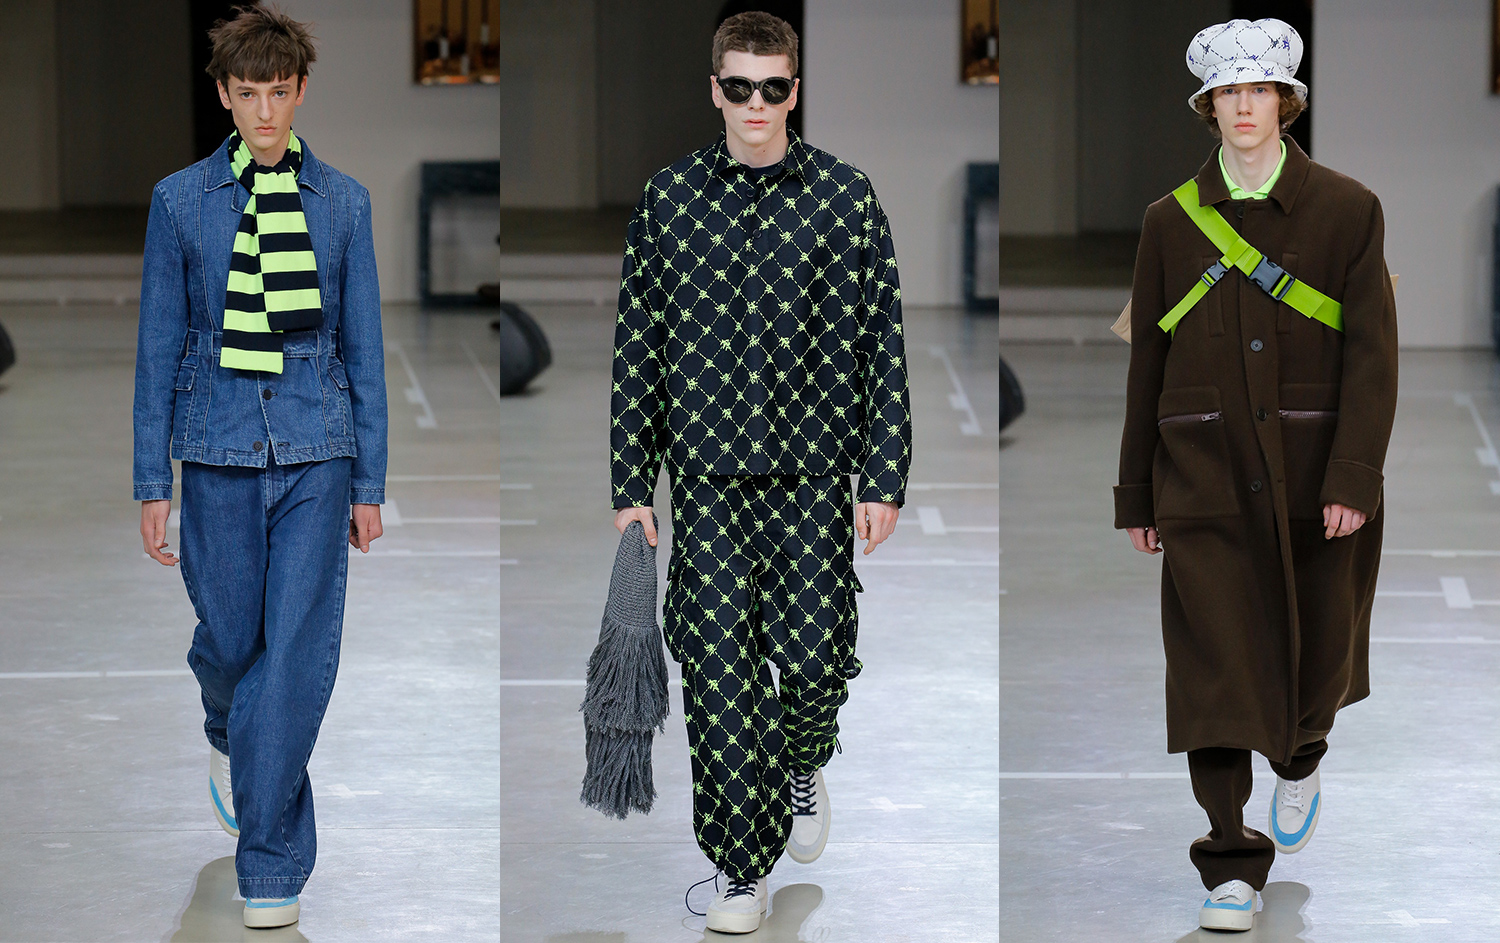 Sunnei Autumn Winter 2018, Milan Fashion Week Men's AW18